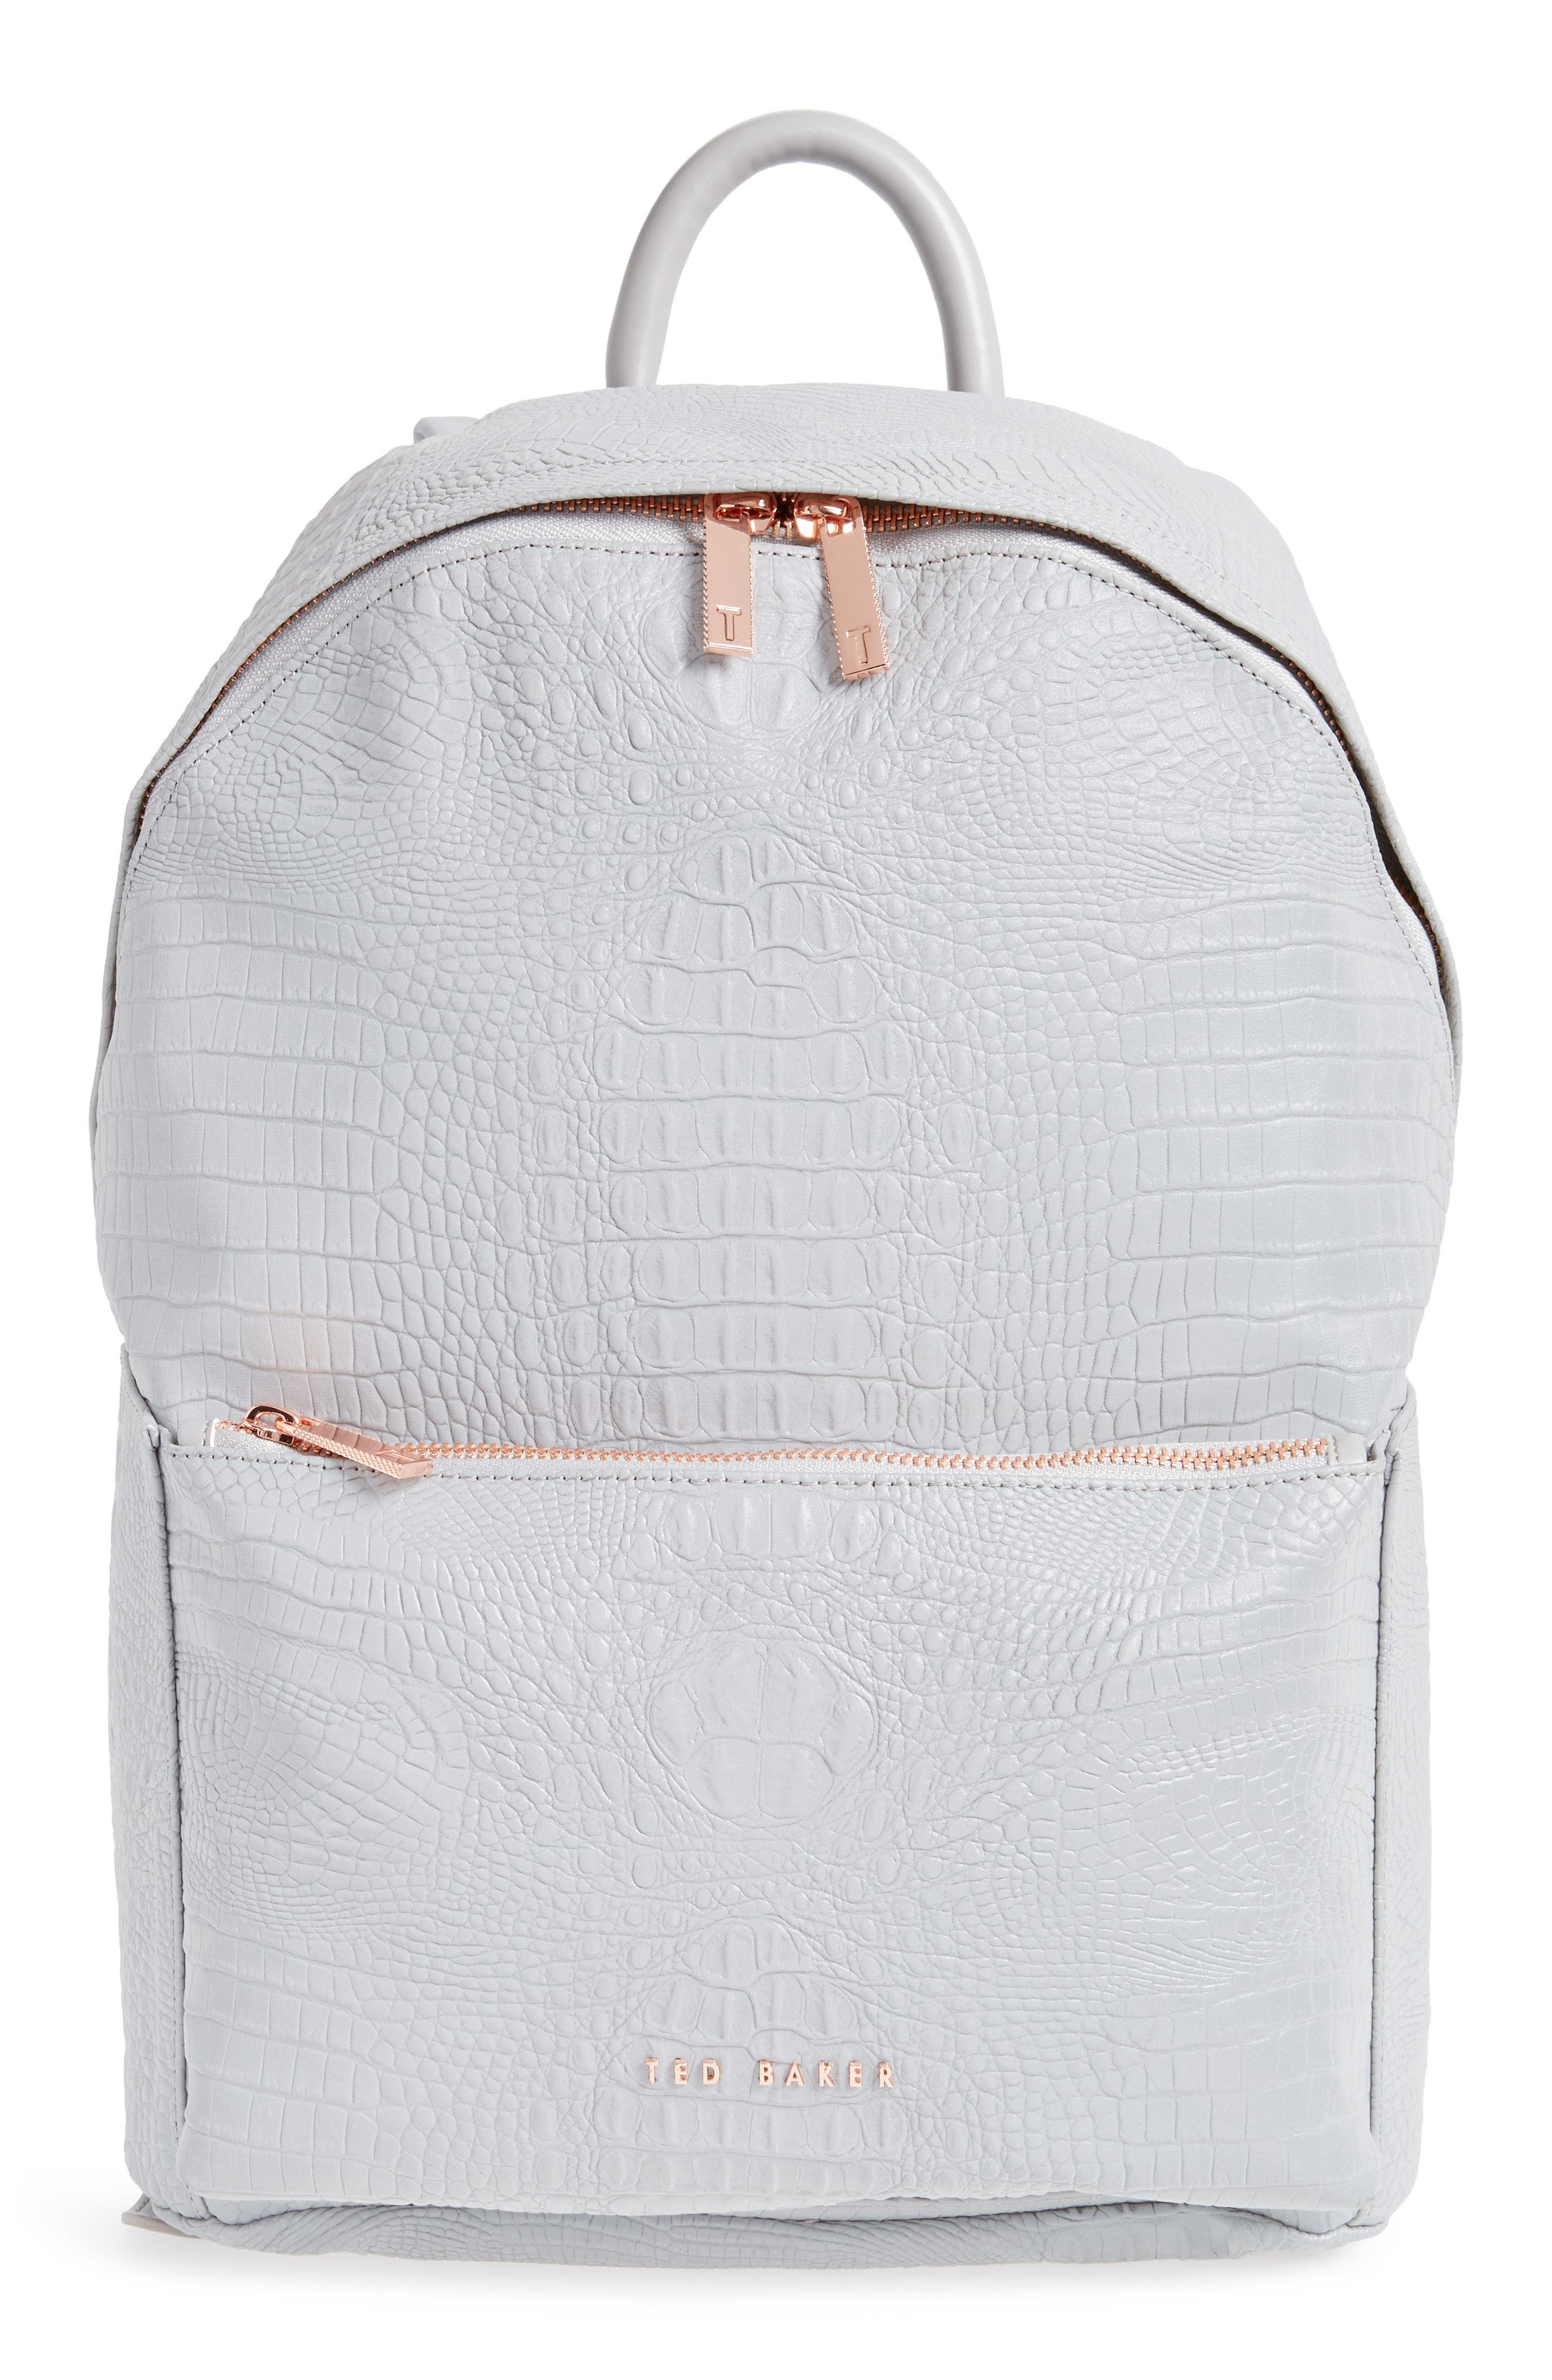 Main Image - Ted Baker London Rahri Reflective Croc Embossed Faux Leather Backpack